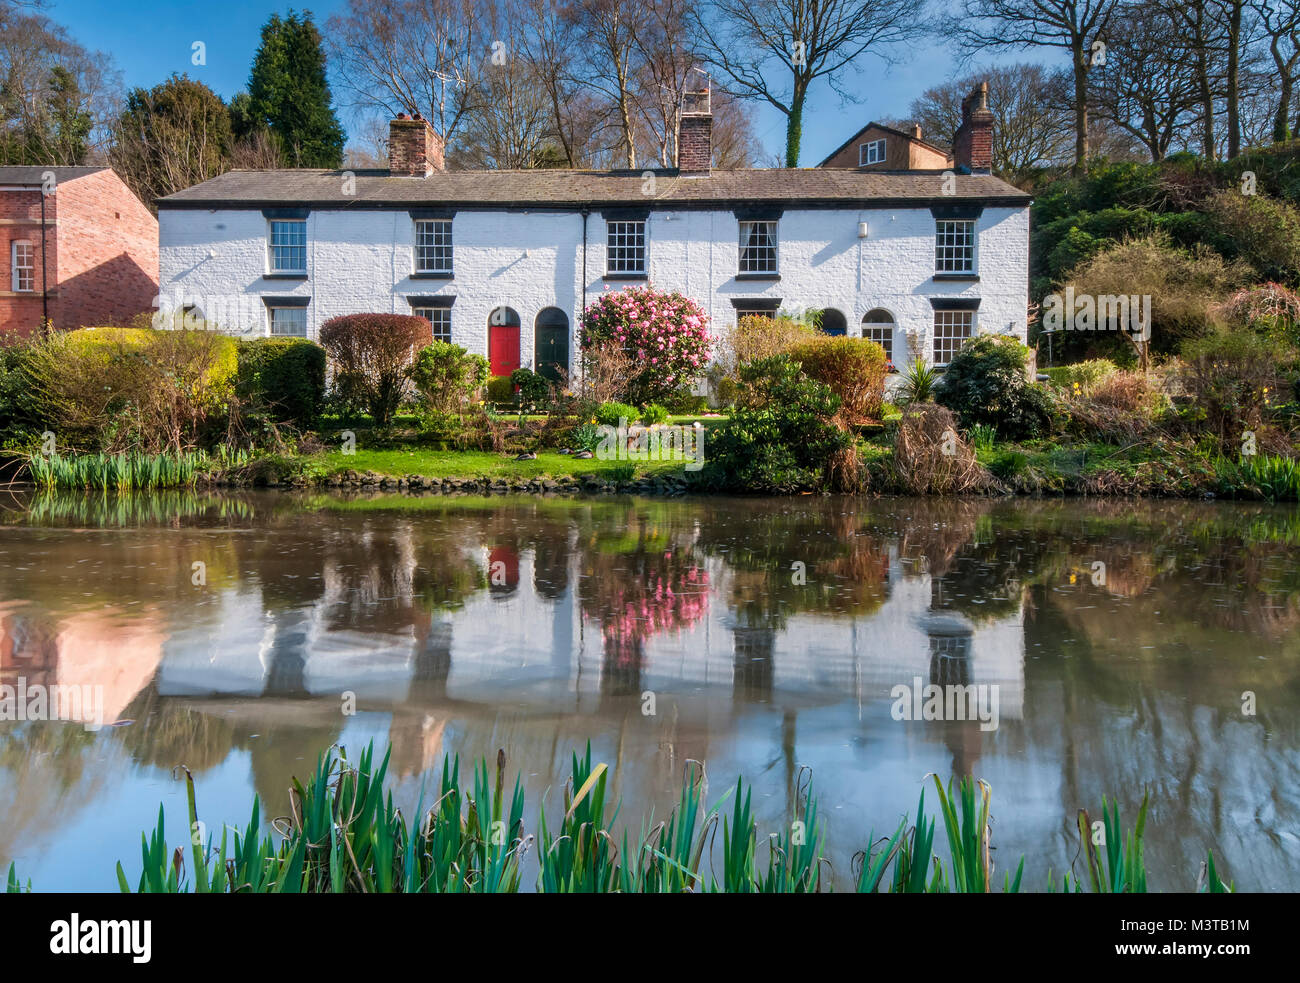 Beautiful White Cottages at The Dell, Lymm, Cheshire, England, UK - Stock Image